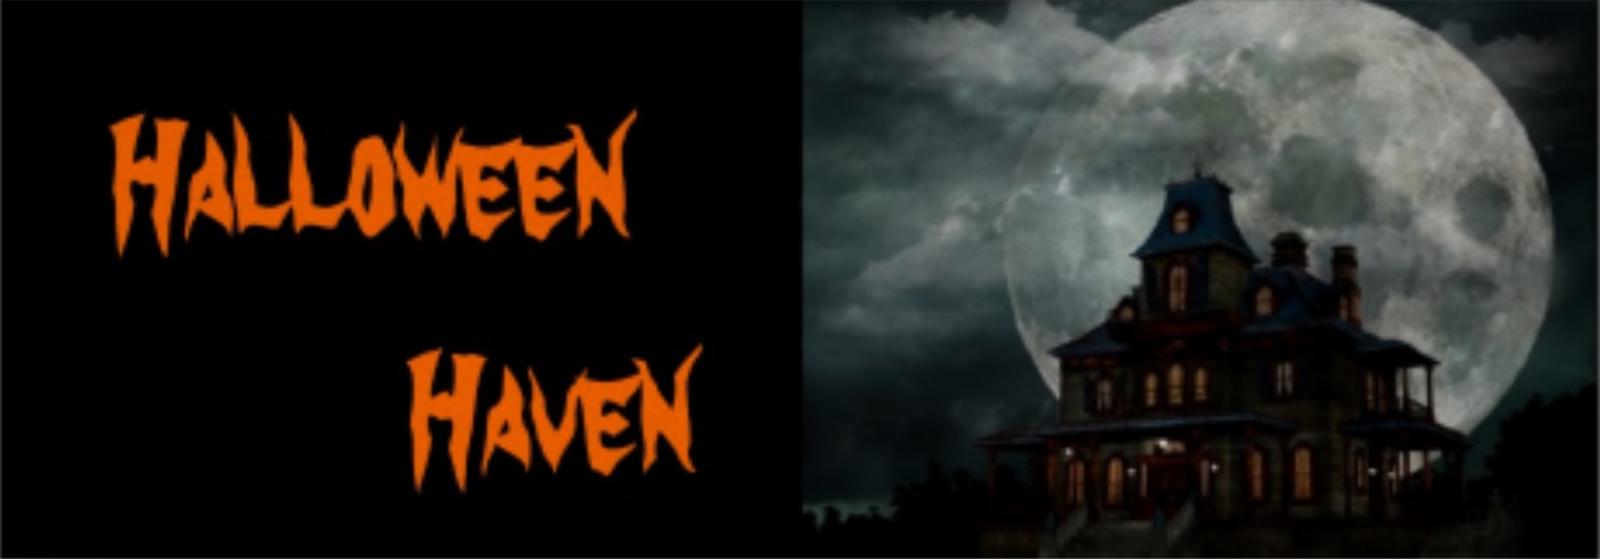 Halloween Haven